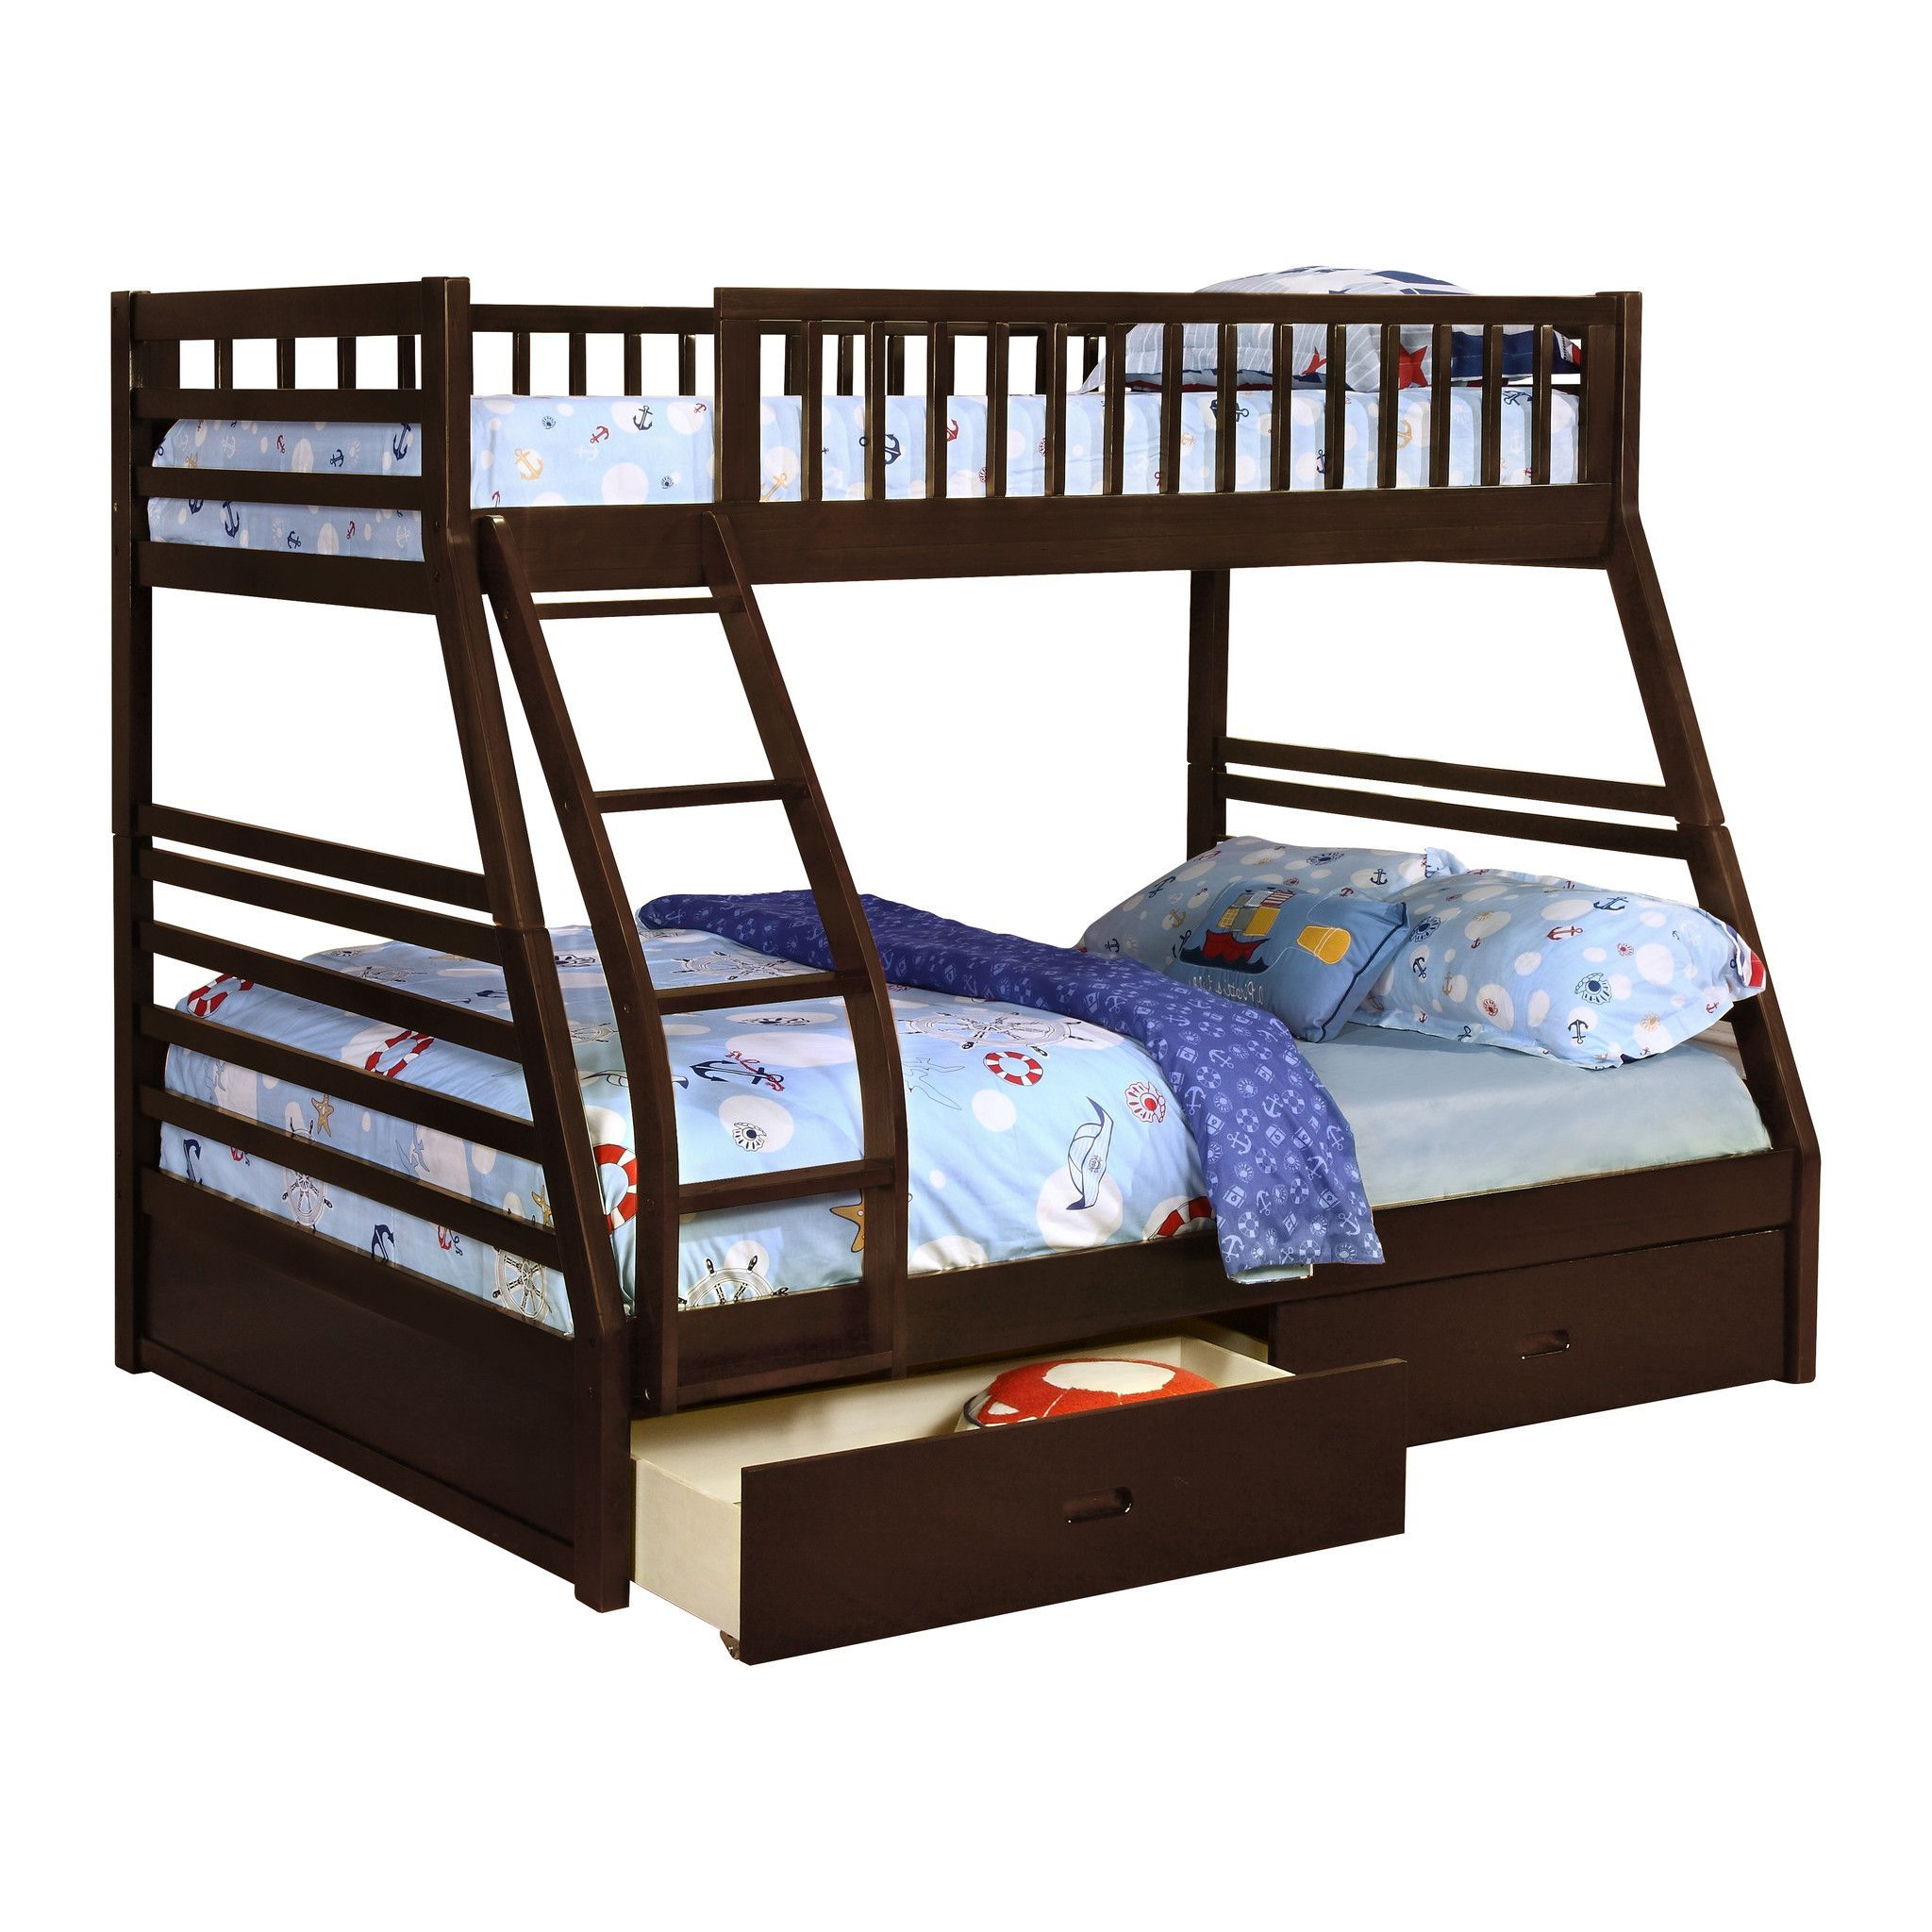 Bunk Bed Pilaster Designs Espresso Finish Wood Twin Over Full Size Convertible